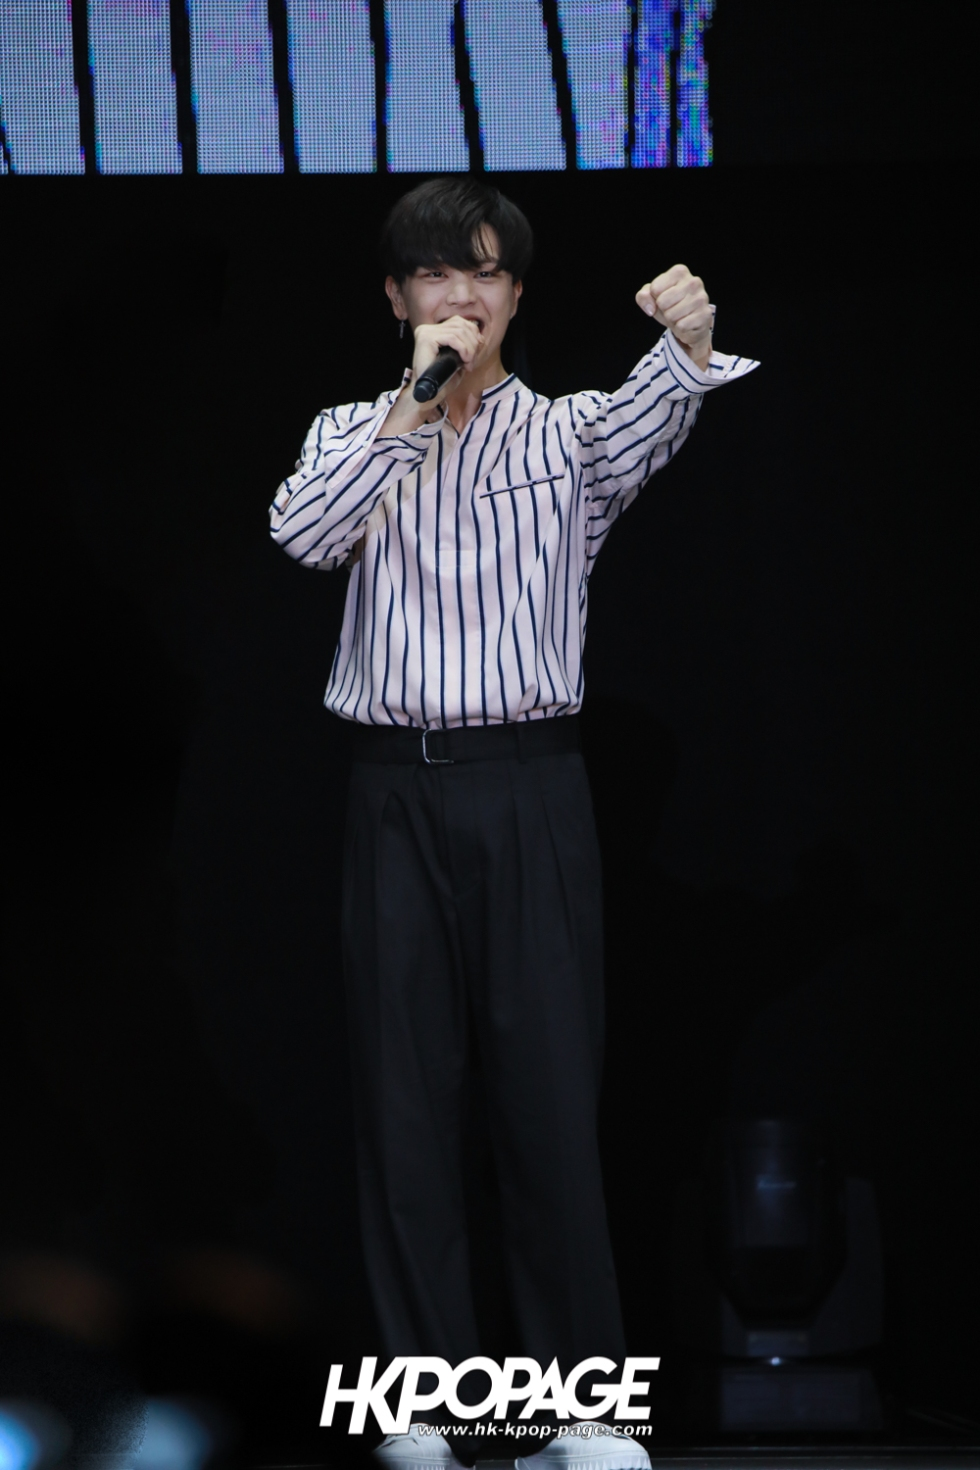 "[HK.KPOP.PAGE] 180519_Yook Sung Jae""Paradise""Fan Meeting in Hong Kong_04"